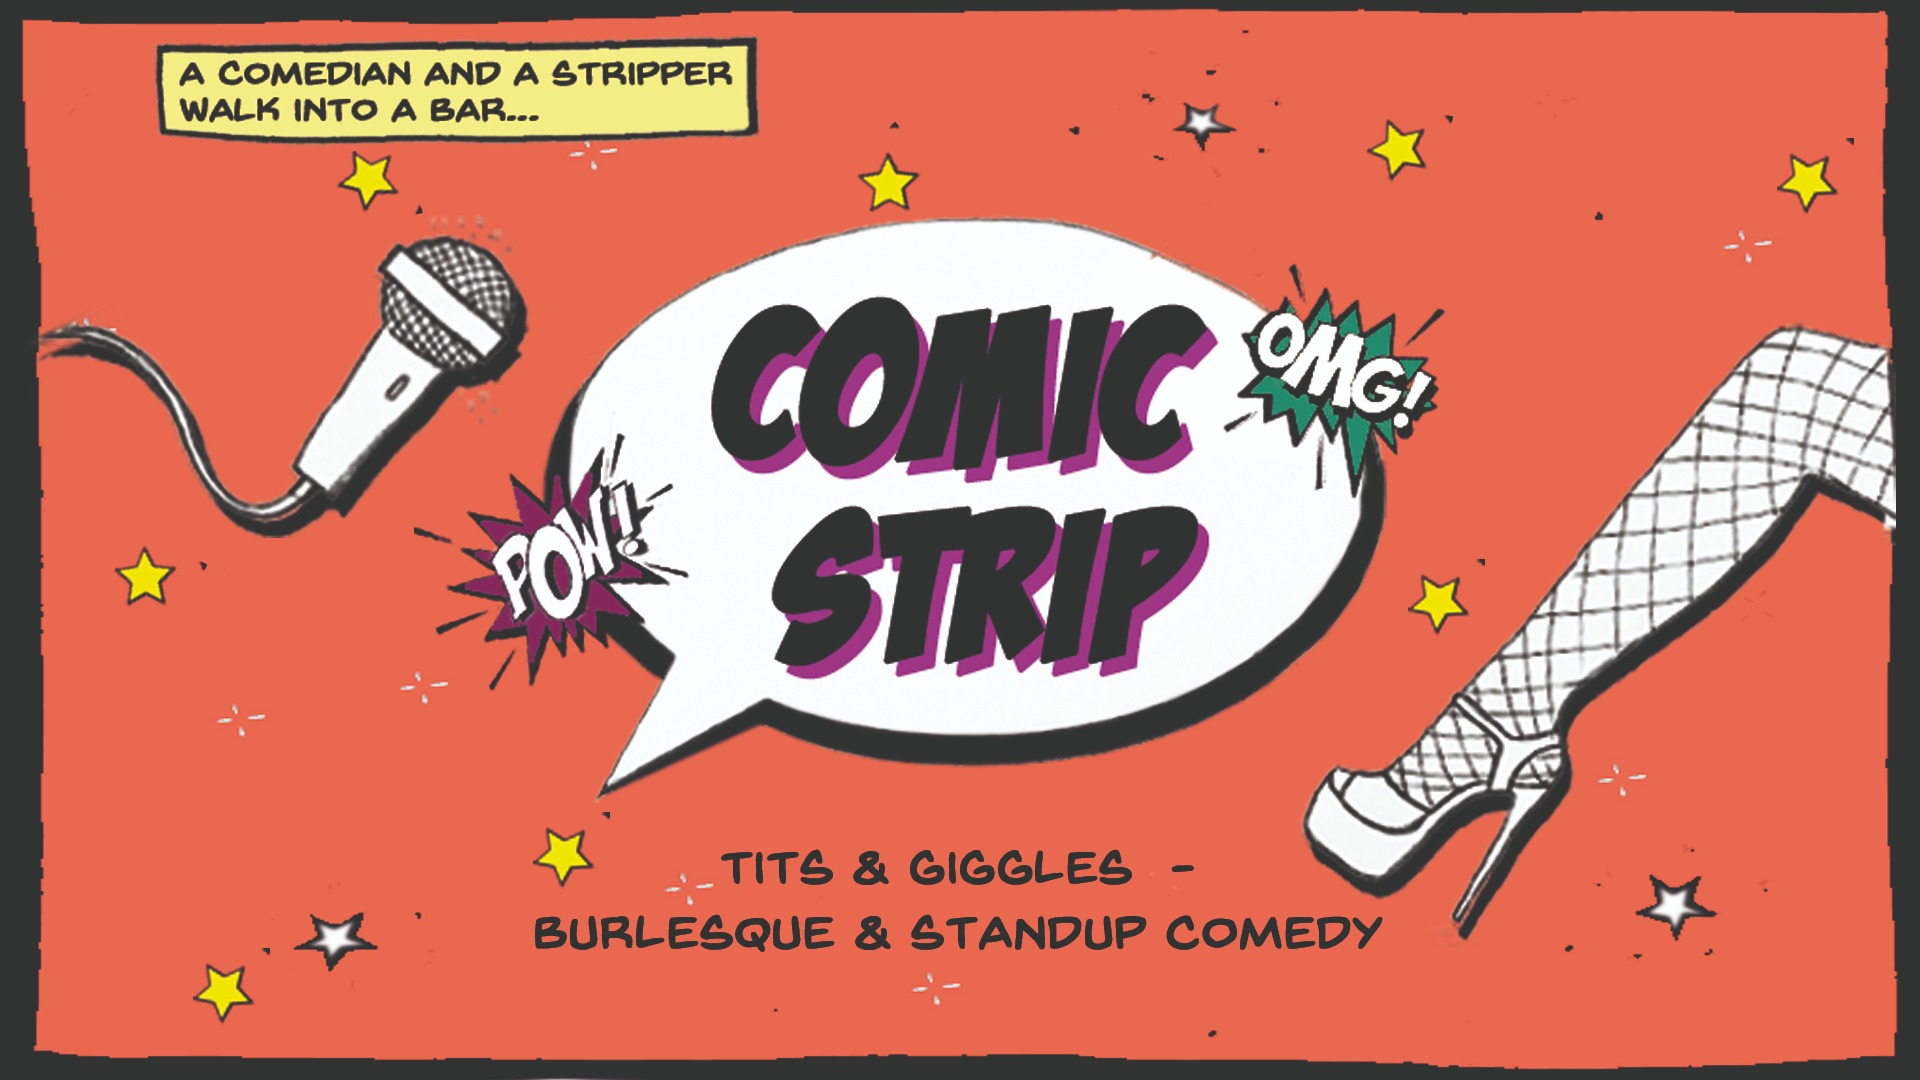 Comic Strip event image